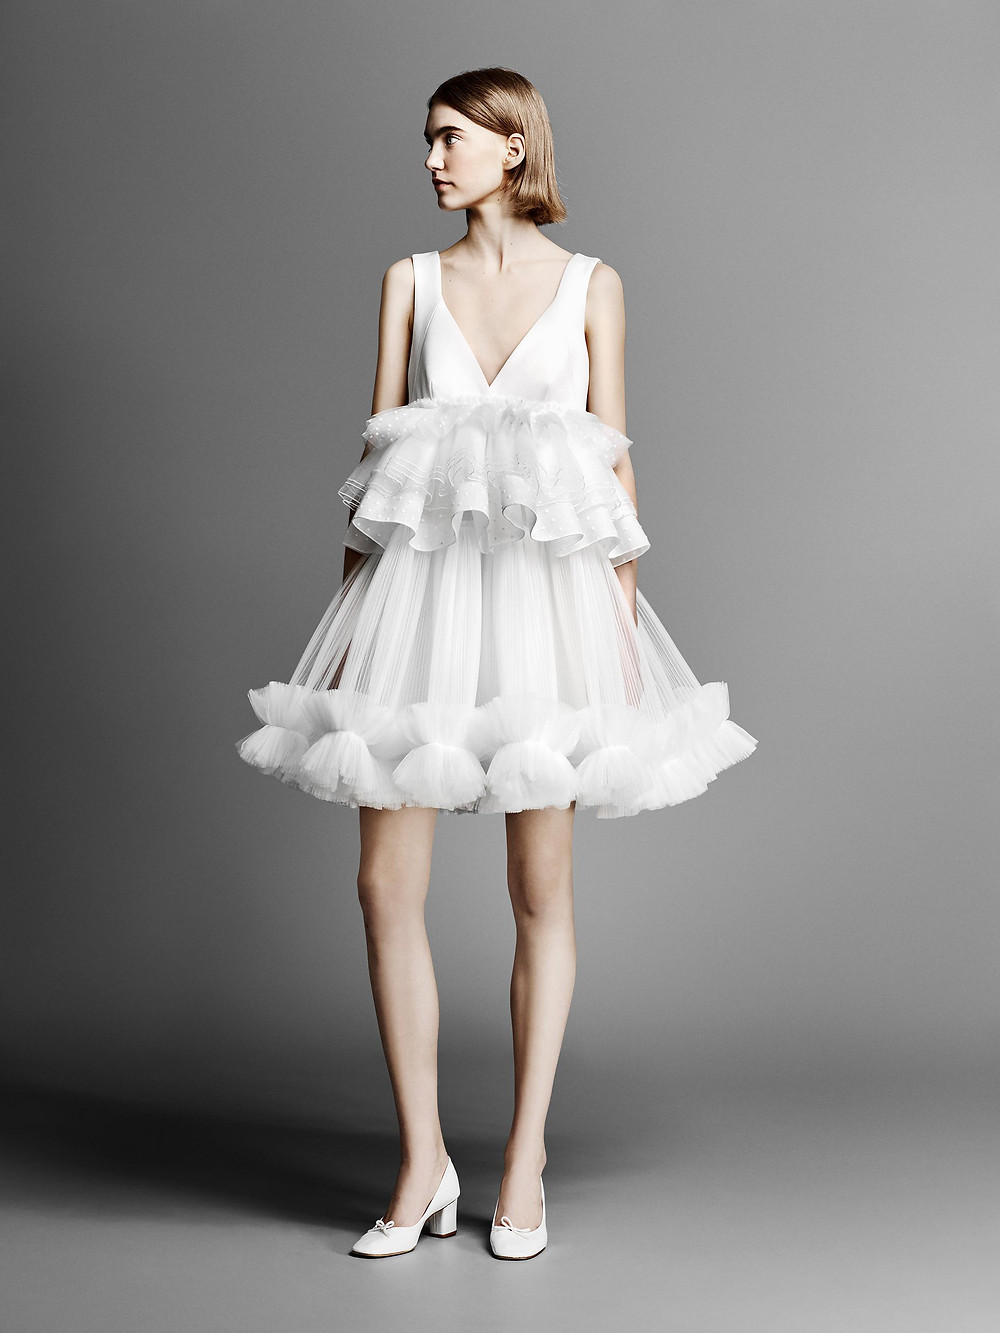 A Viktor & Rolf short ruffle tulle wedding dress